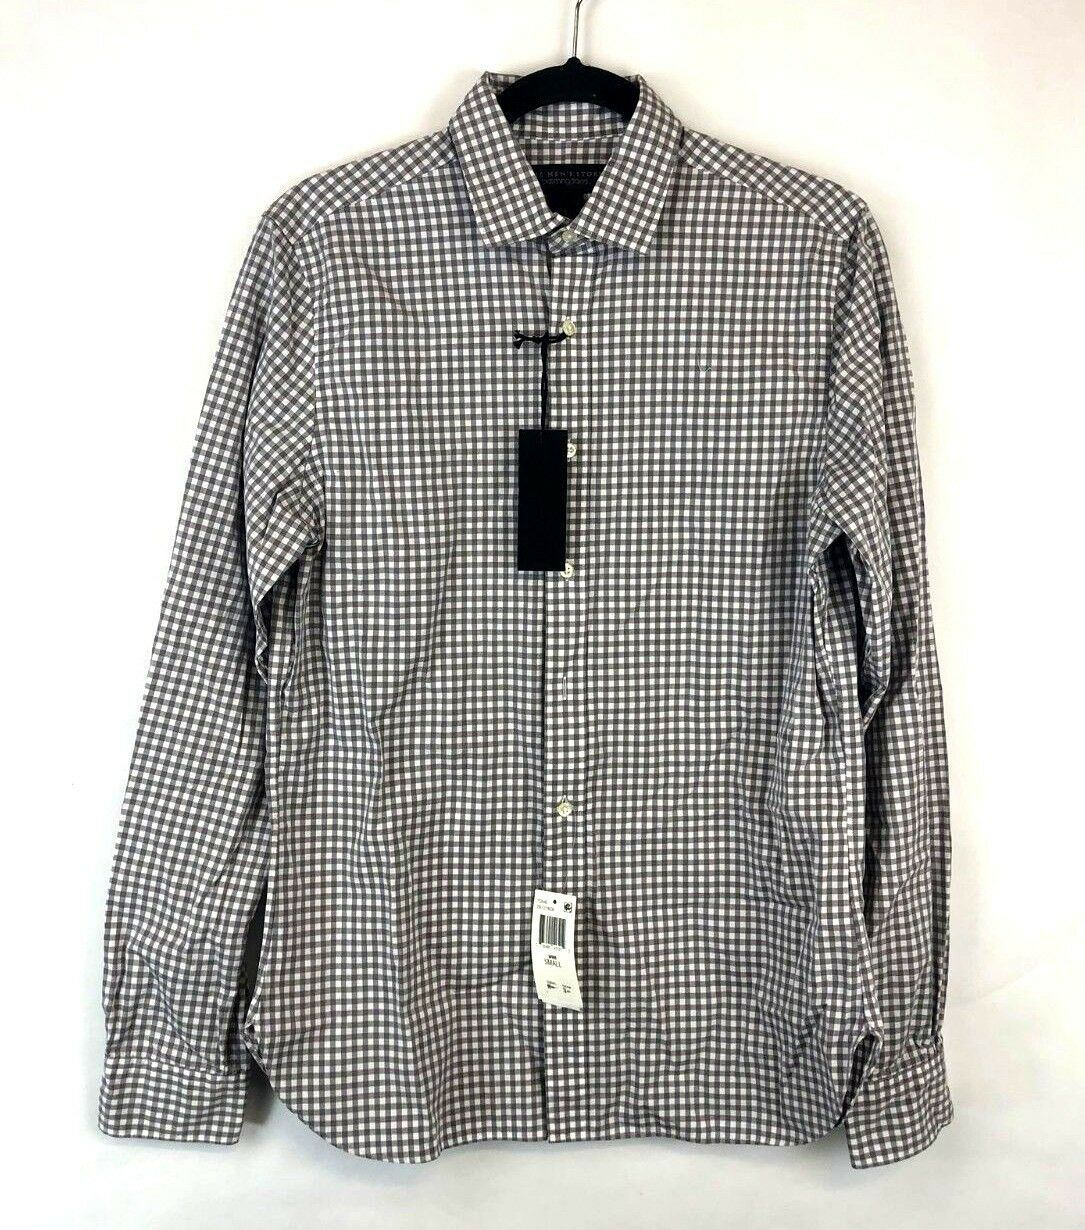 Bloomingdale's Men's Plaid Button Down Size S New With Tags